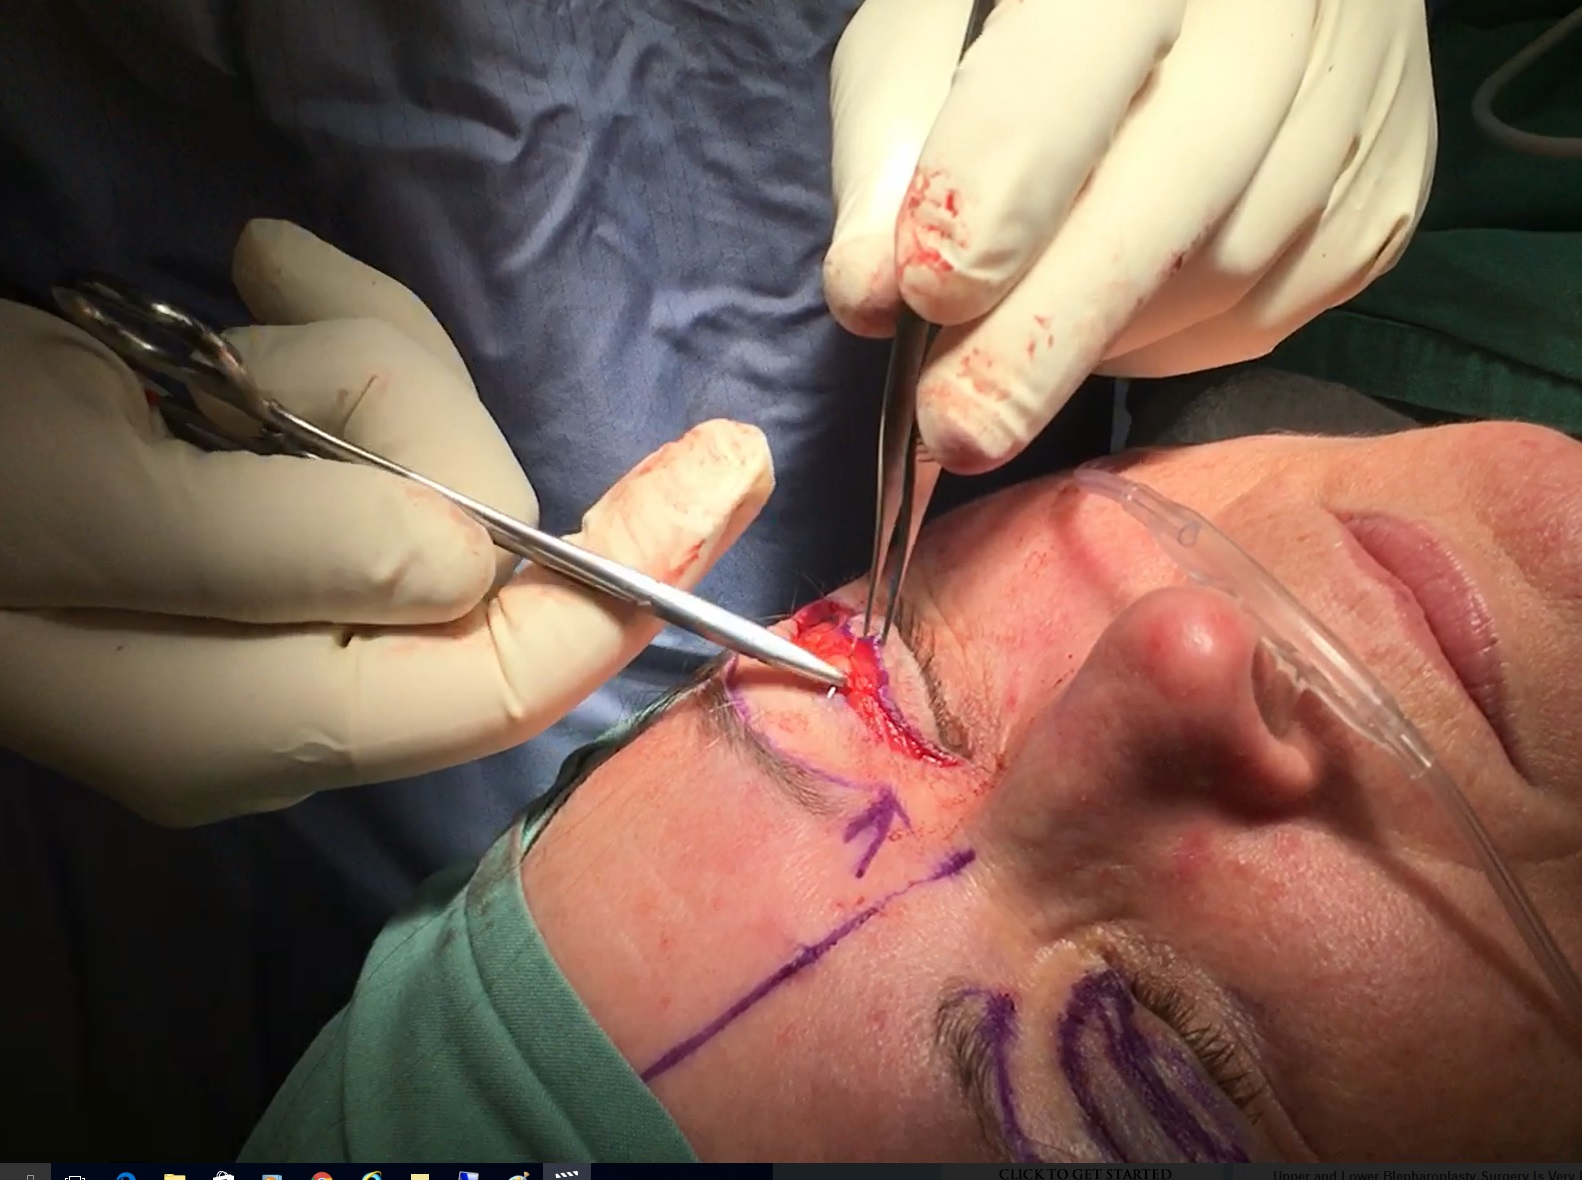 blepharoplasty-plicating-the-upper-eyelids